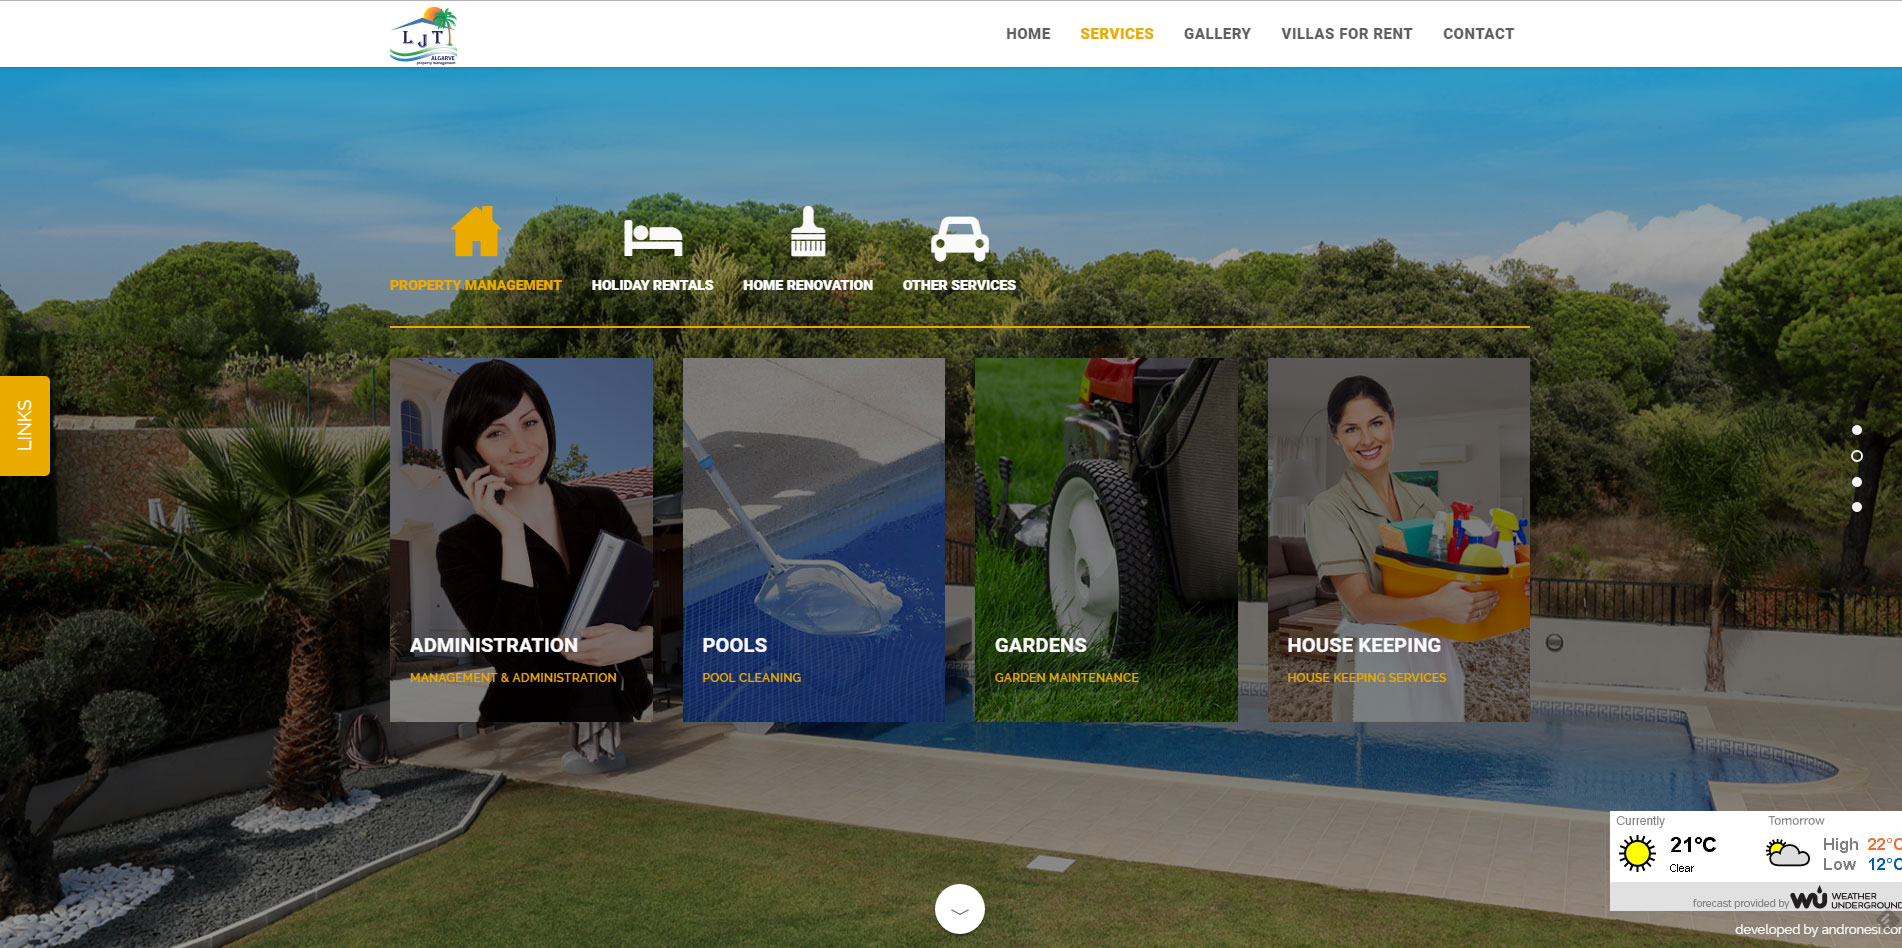 mobile ready website design for LJT Algarve